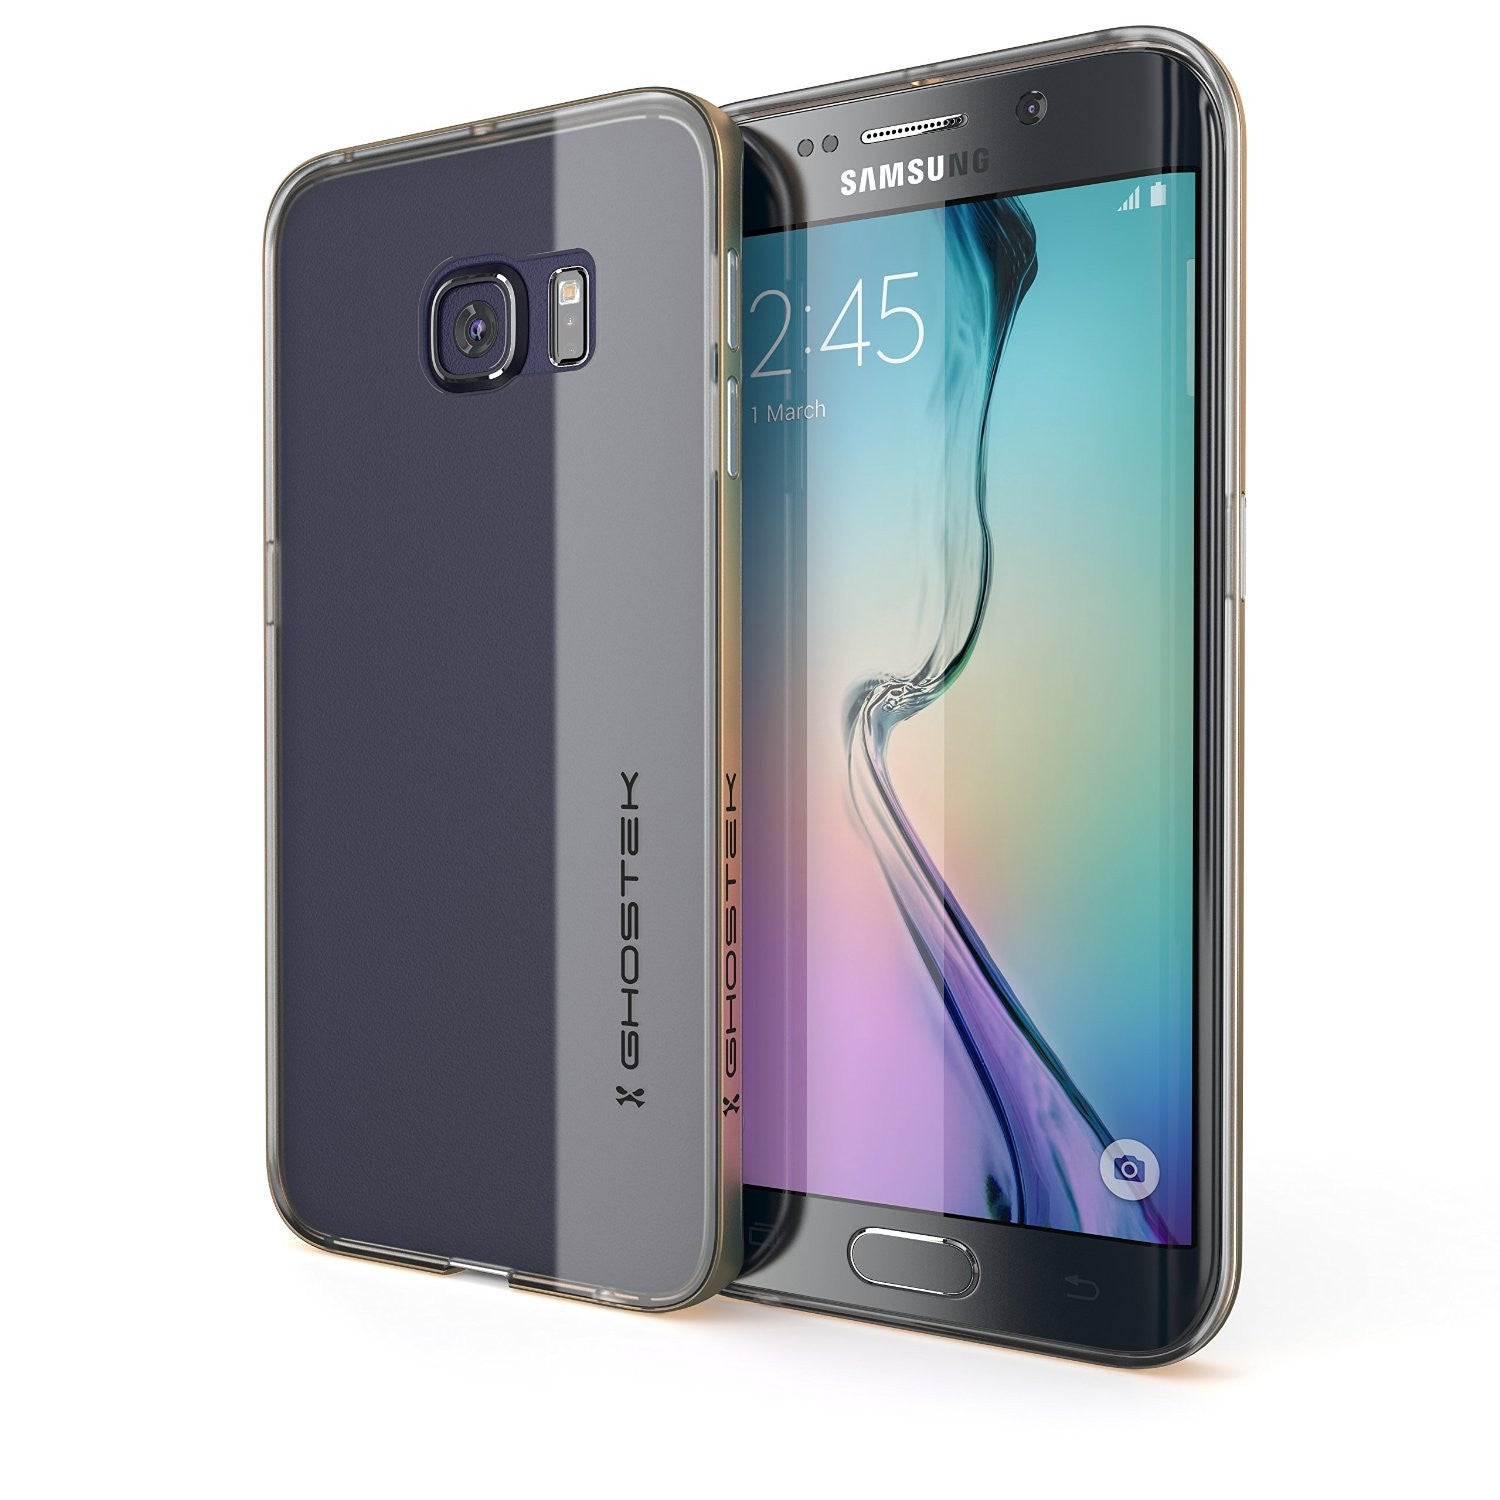 galaxy s6 edge casesgalaxy s6 edge case, ghostek back sapphire cloak series slim hybrid impact armor lifetime